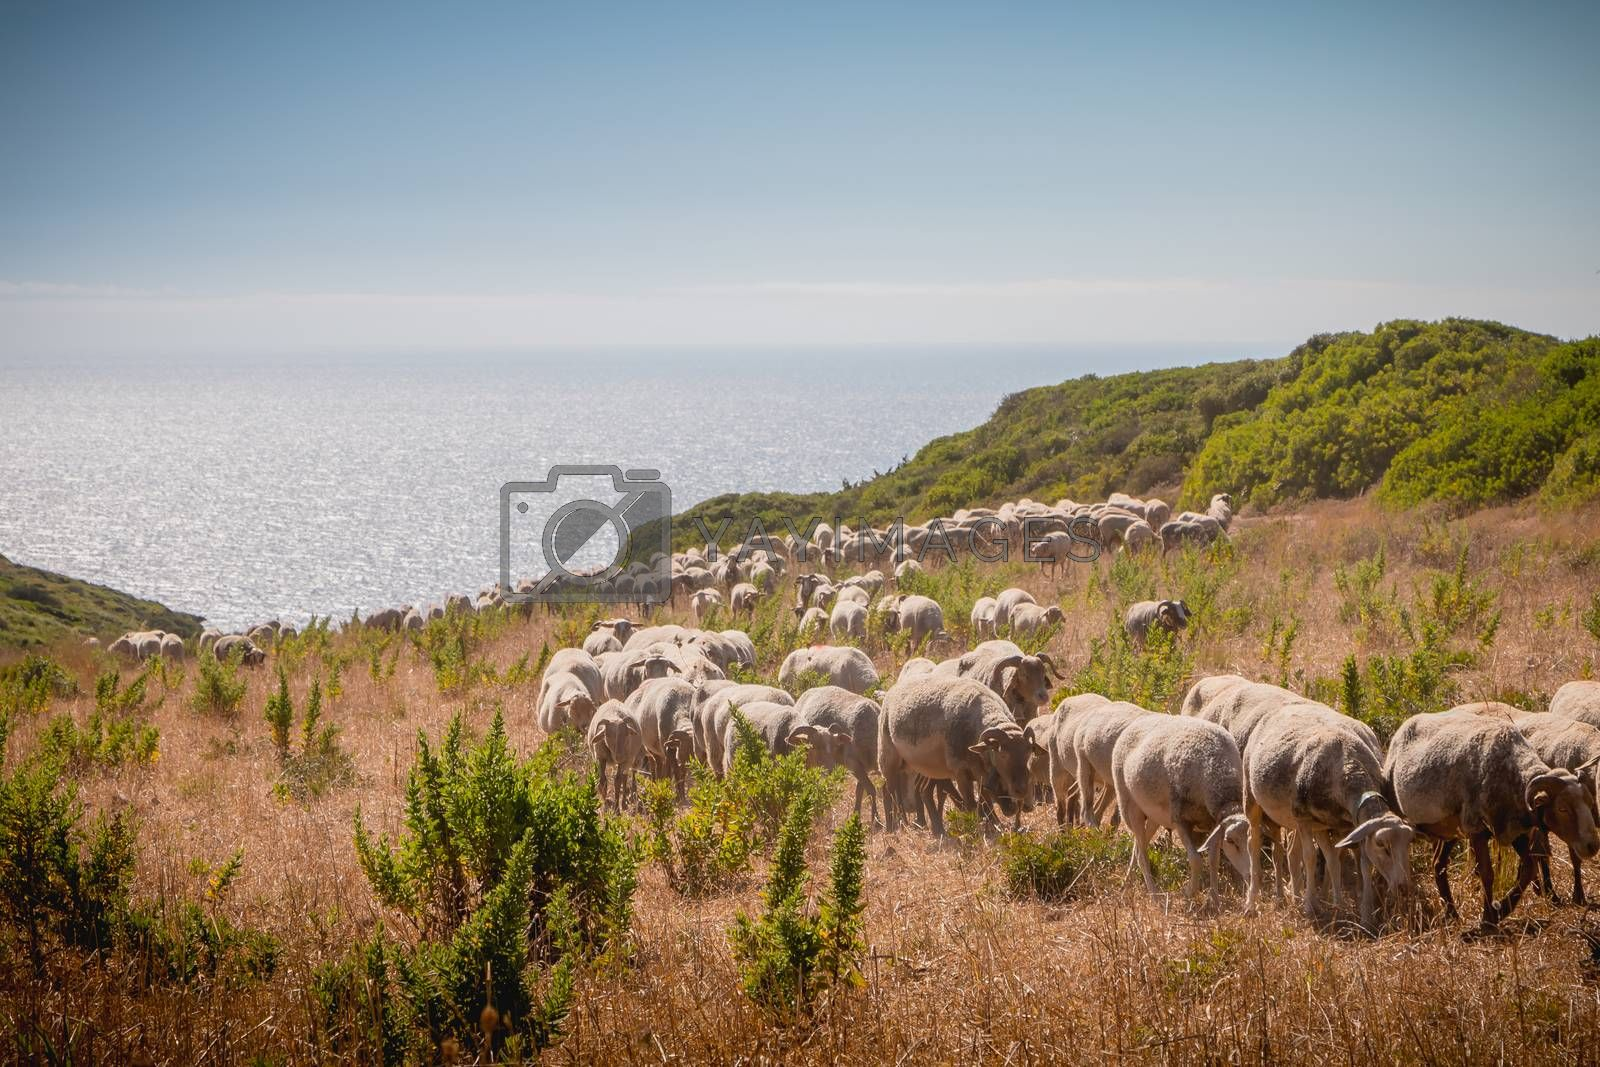 flock of sheep in a grassland by the sea near Sesimbra, Portugal